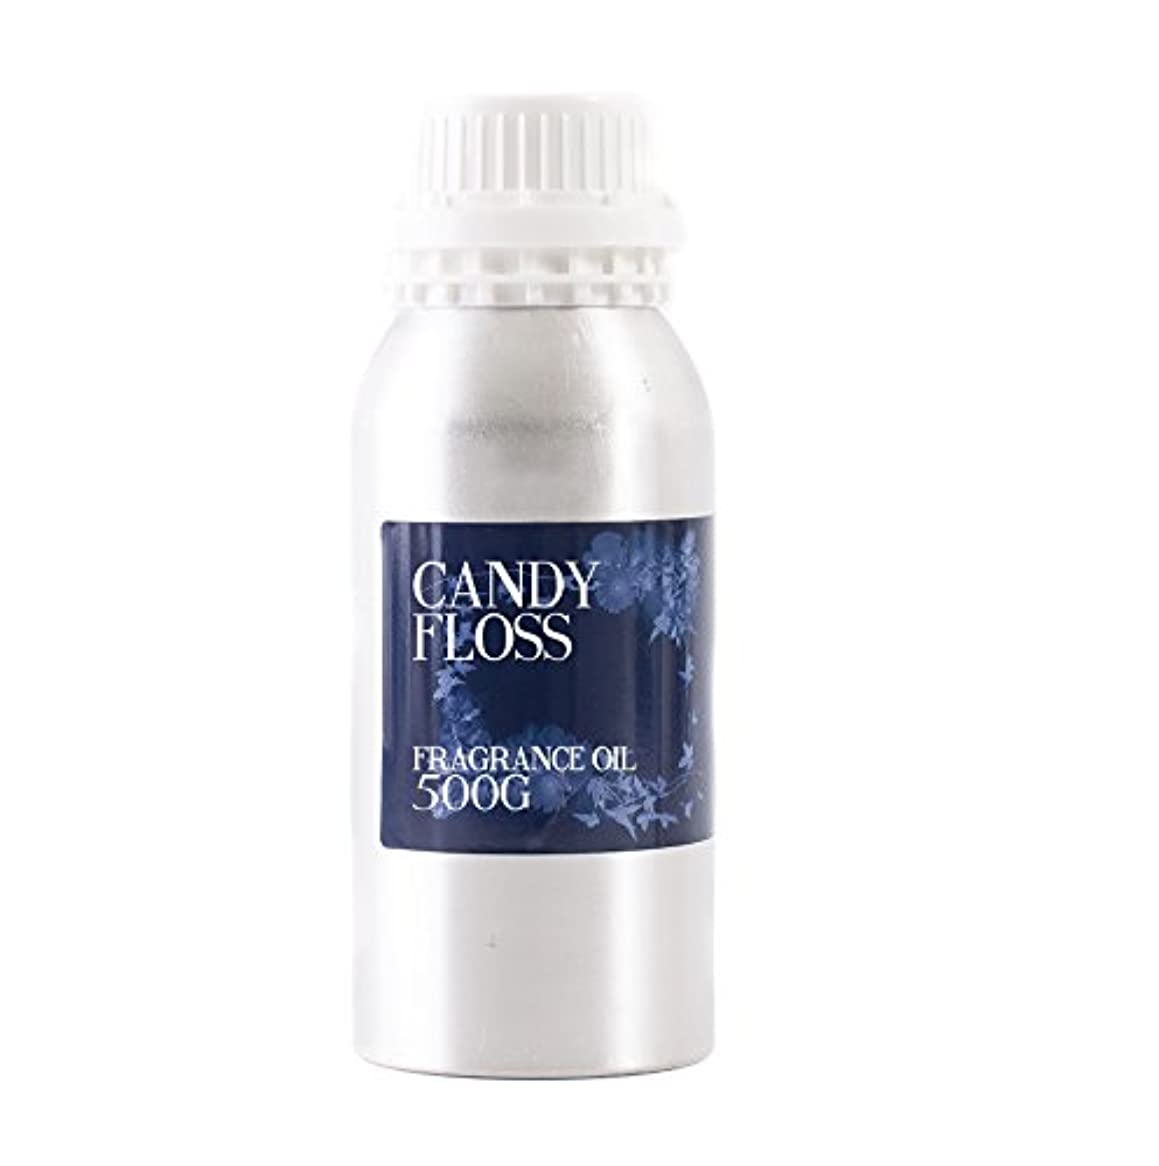 Mystic Moments   Candy Floss Fragrance Oil - 500g